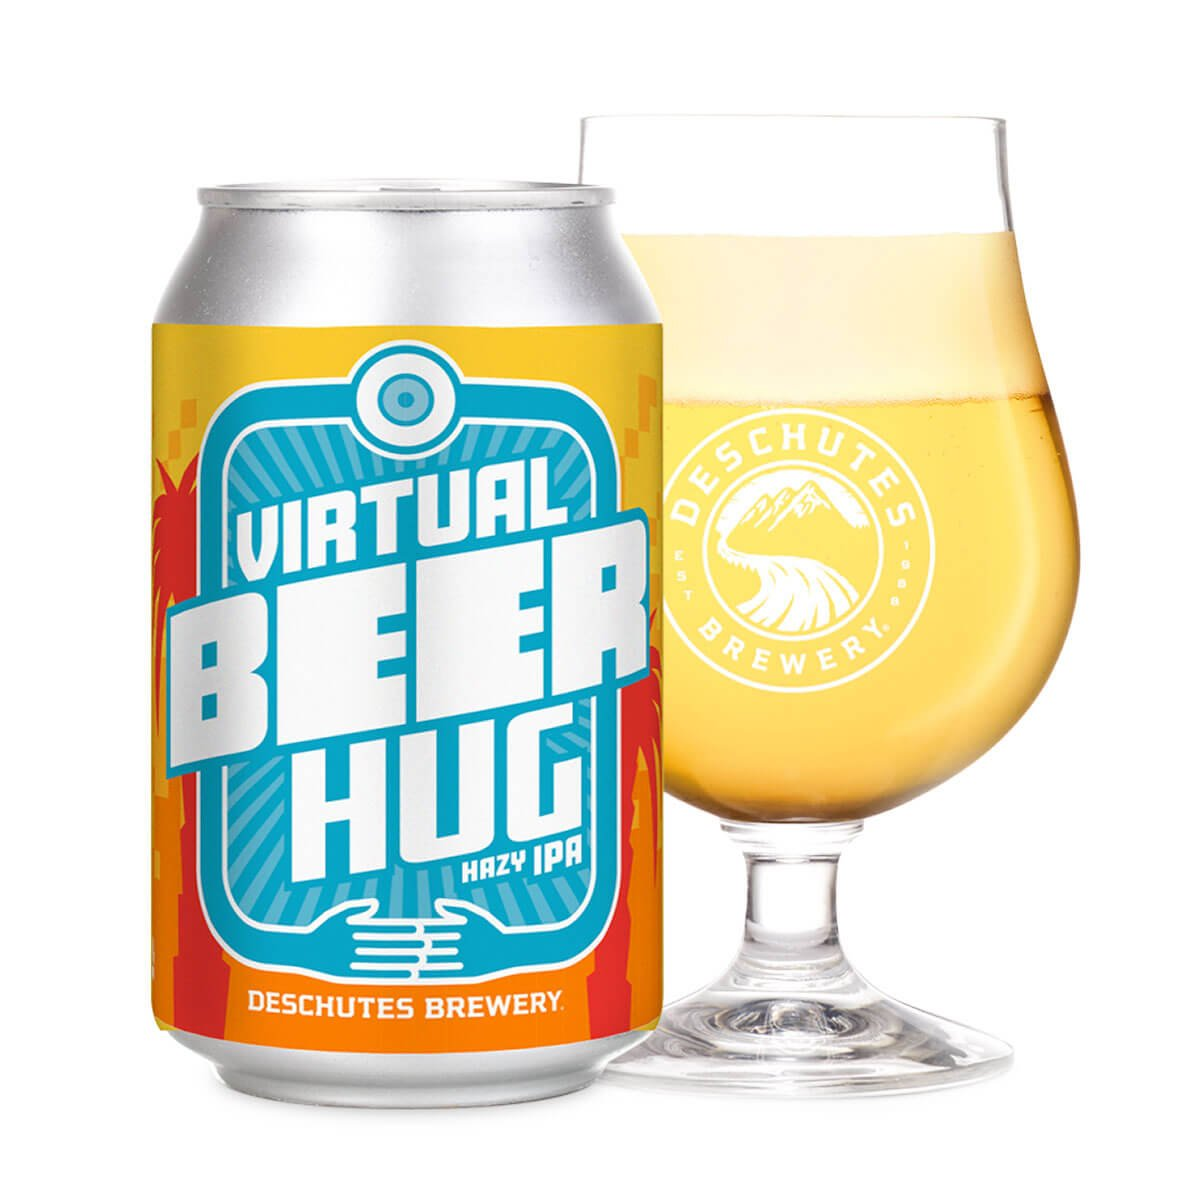 The Virtual Beer Hug by Deschutes Brewery is one of two beers being released in support of the hospitality industry